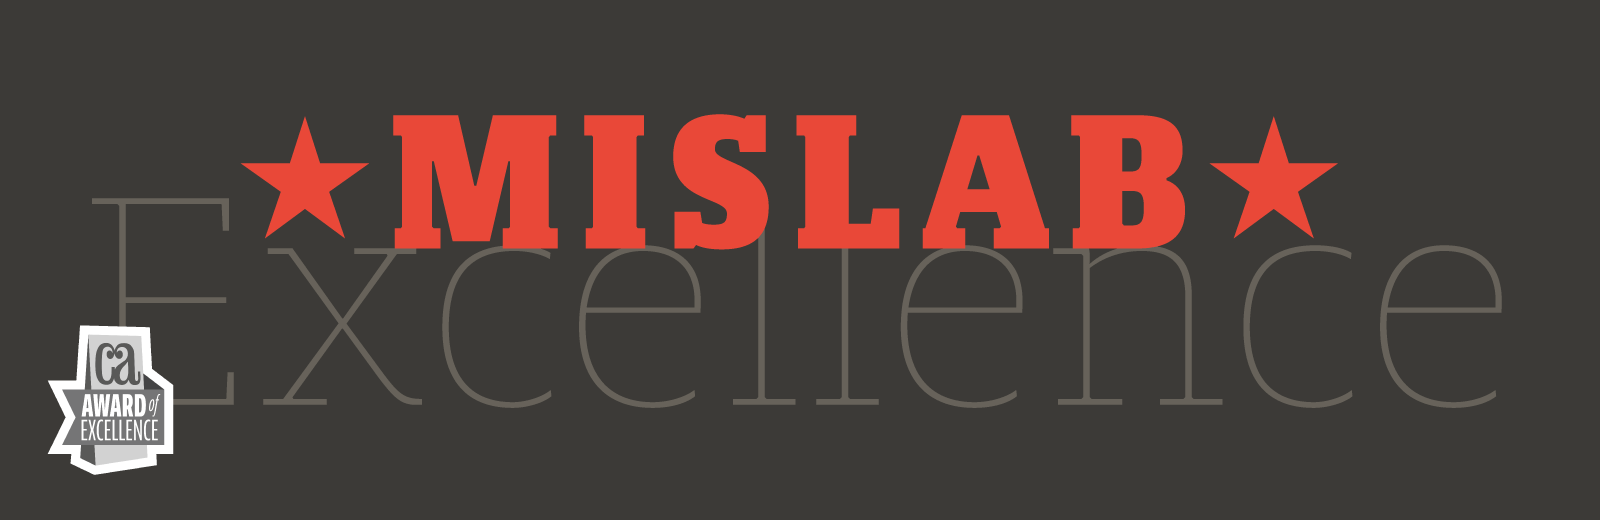 Mislab font by Xavier Dupré for Typofonderie - Communication Arts award 2014